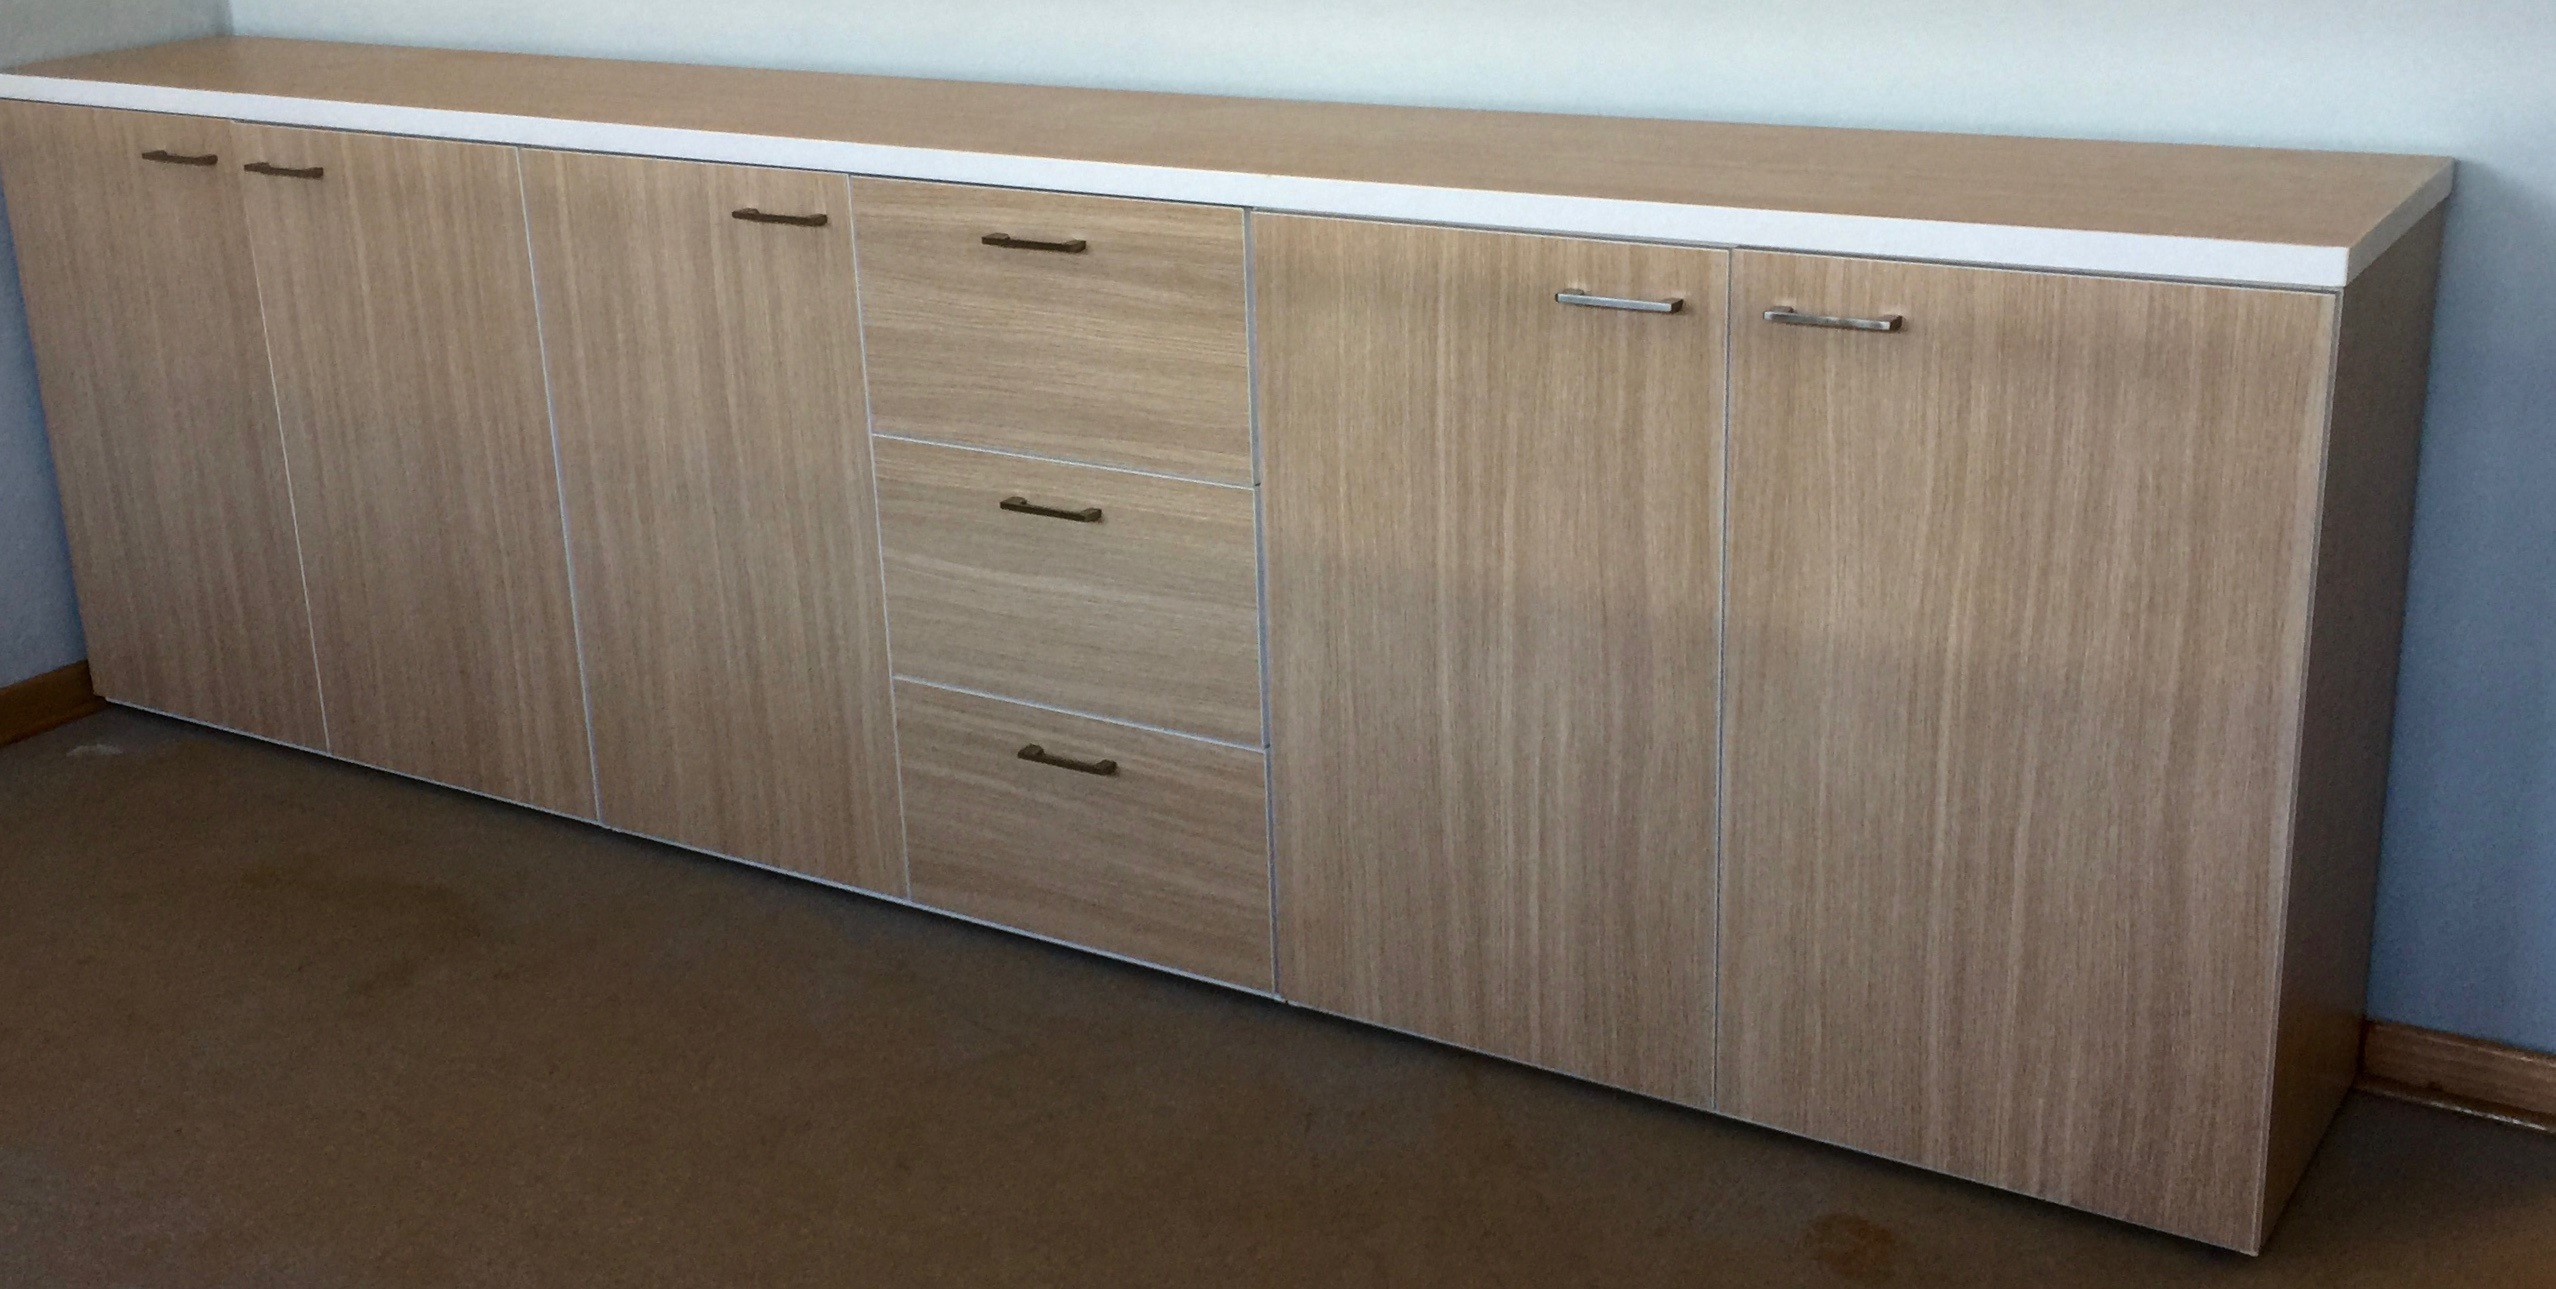 Long Server Storage Unit made up in SummerOak Laminate with White Trim on Edges. Includes drawers and hinged door cupboards with inner shelving. Image